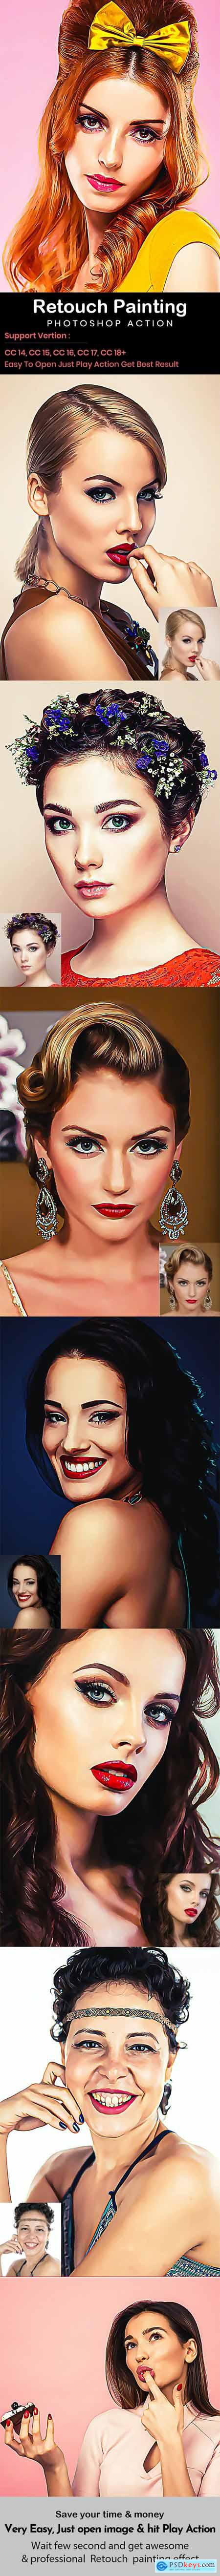 Retouch Painting Action 29150706